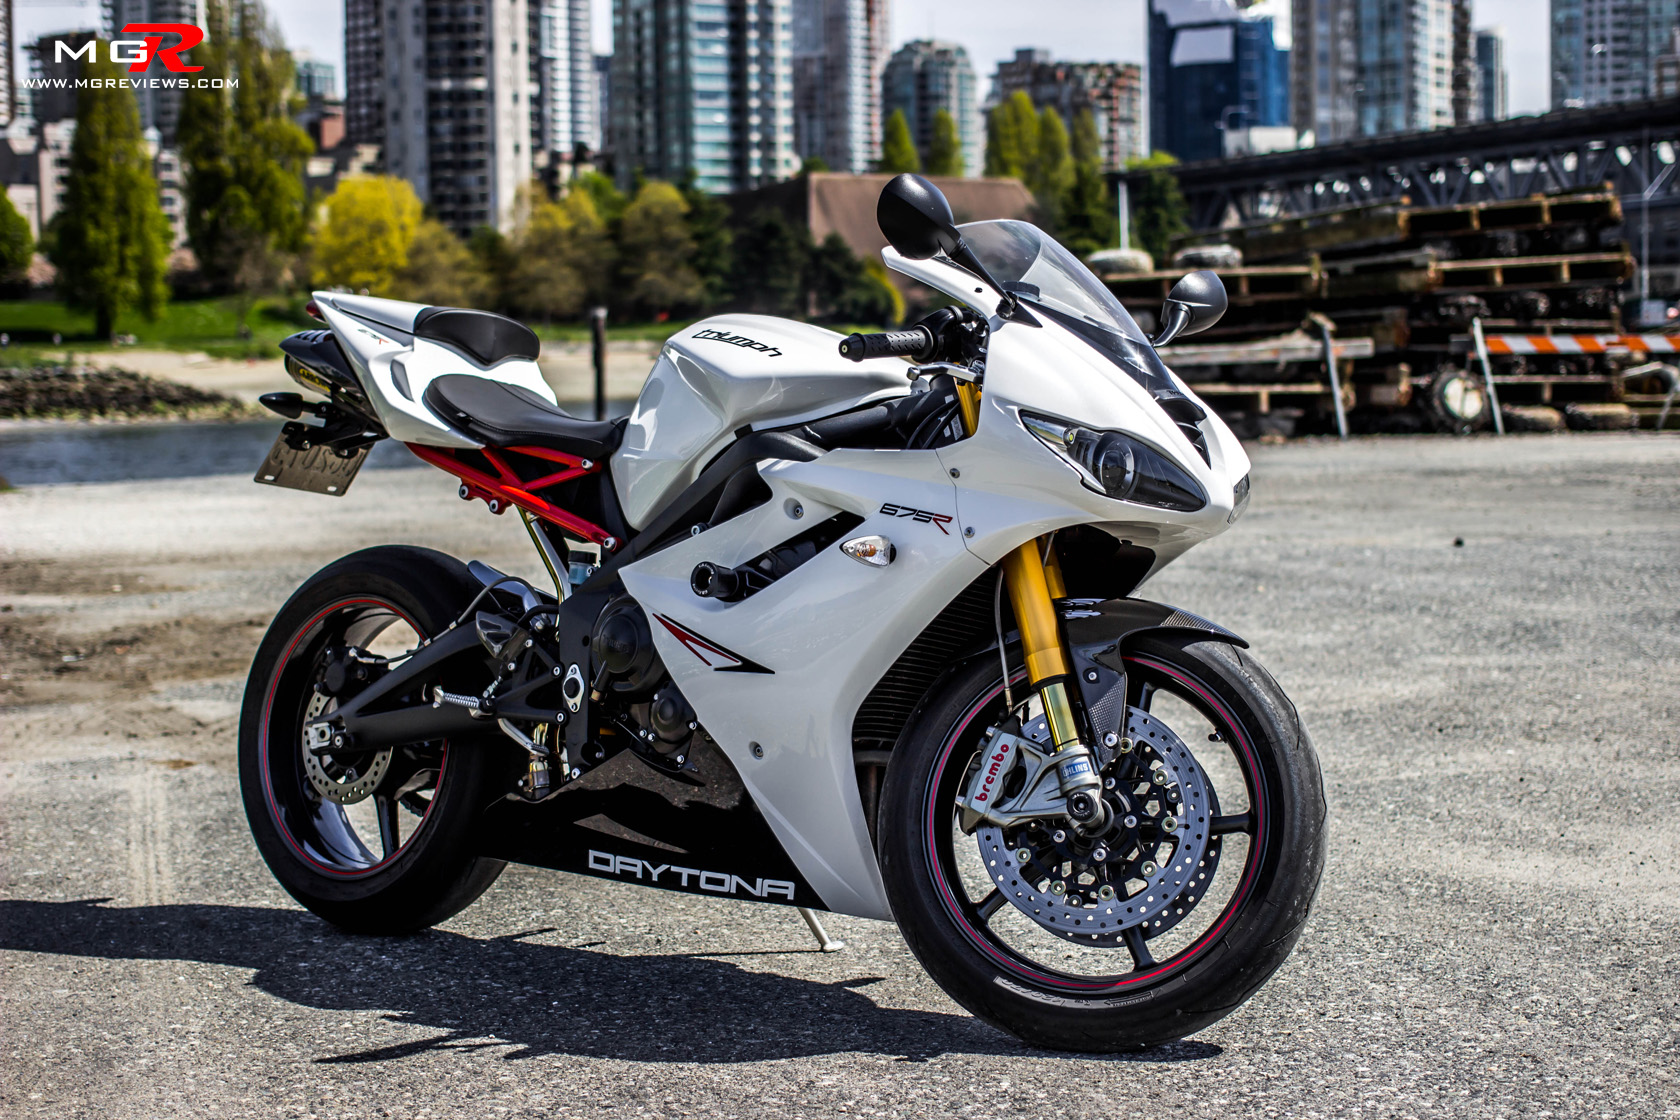 3 cylinder motorcycle engine with Review 2012 Triumph Daytona 675r on Yamaha aerox r 2017 in addition Cafe Racers Bmw Motorcycles 2016 7 furthermore Honda pc pacific coast 800 2093 in addition 2018 Honda Cb300r 143kg Wet Usd Forks 31hp also Bmw Urban Racer.